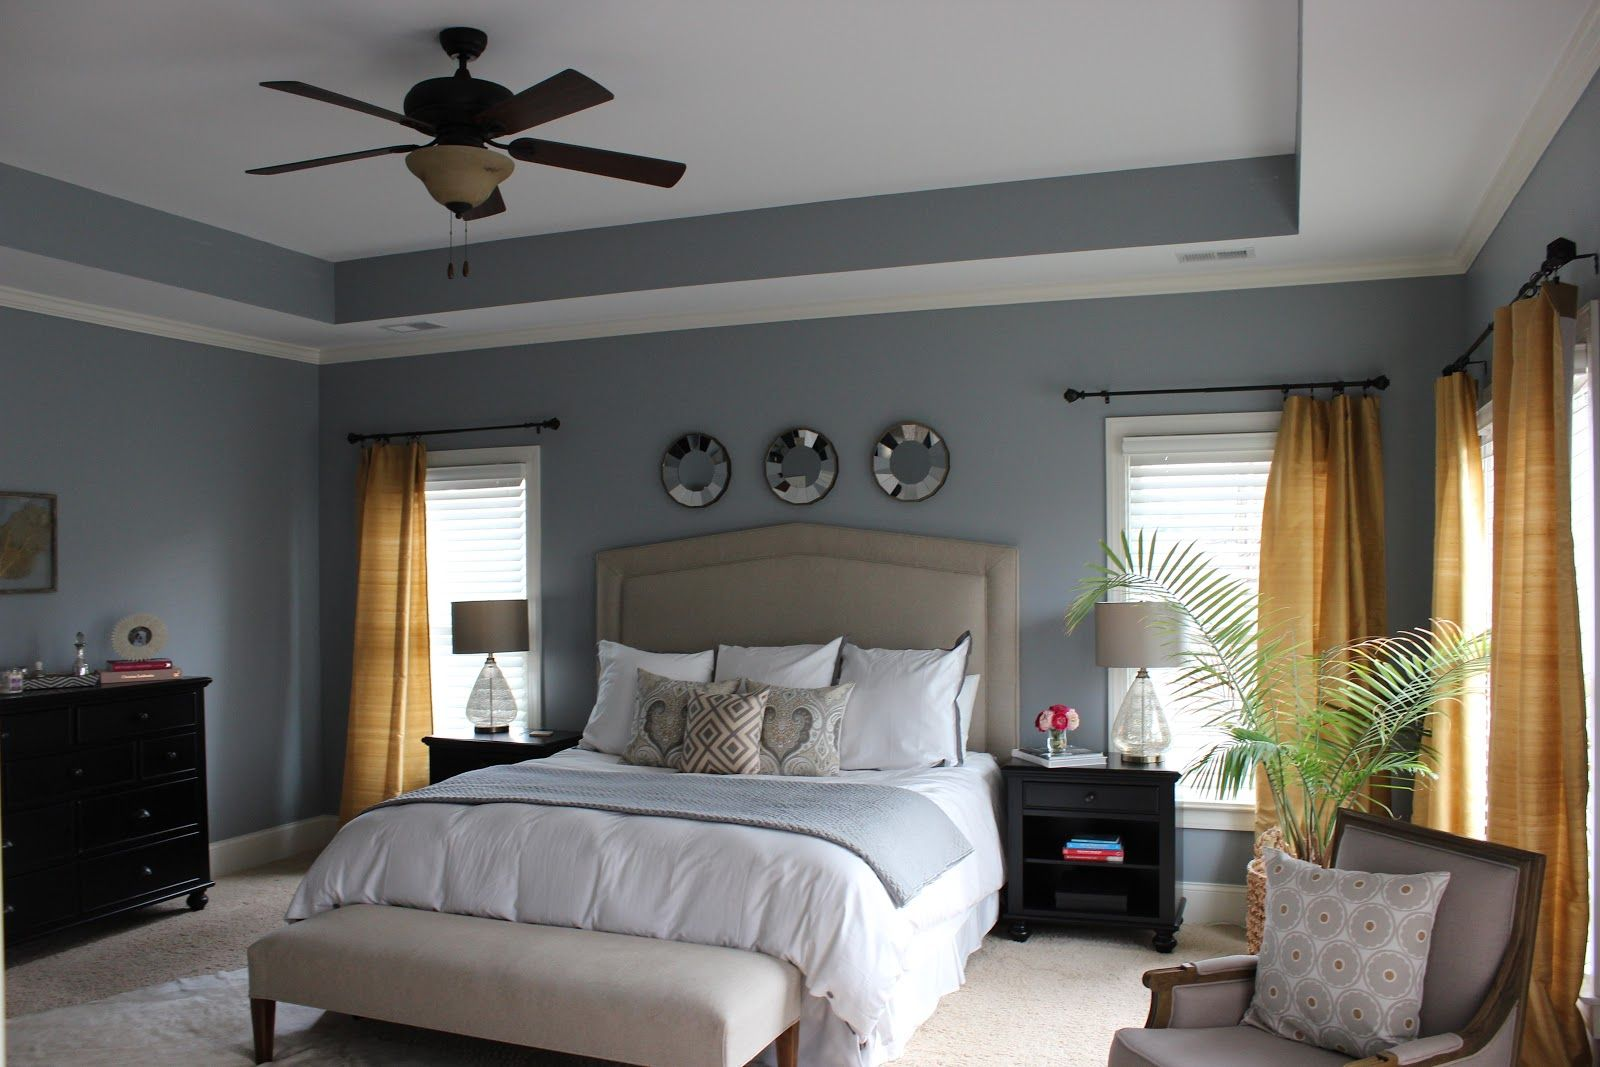 Benjamin moore gull wing grey walls great master bedroom for Interior design bedroom grey